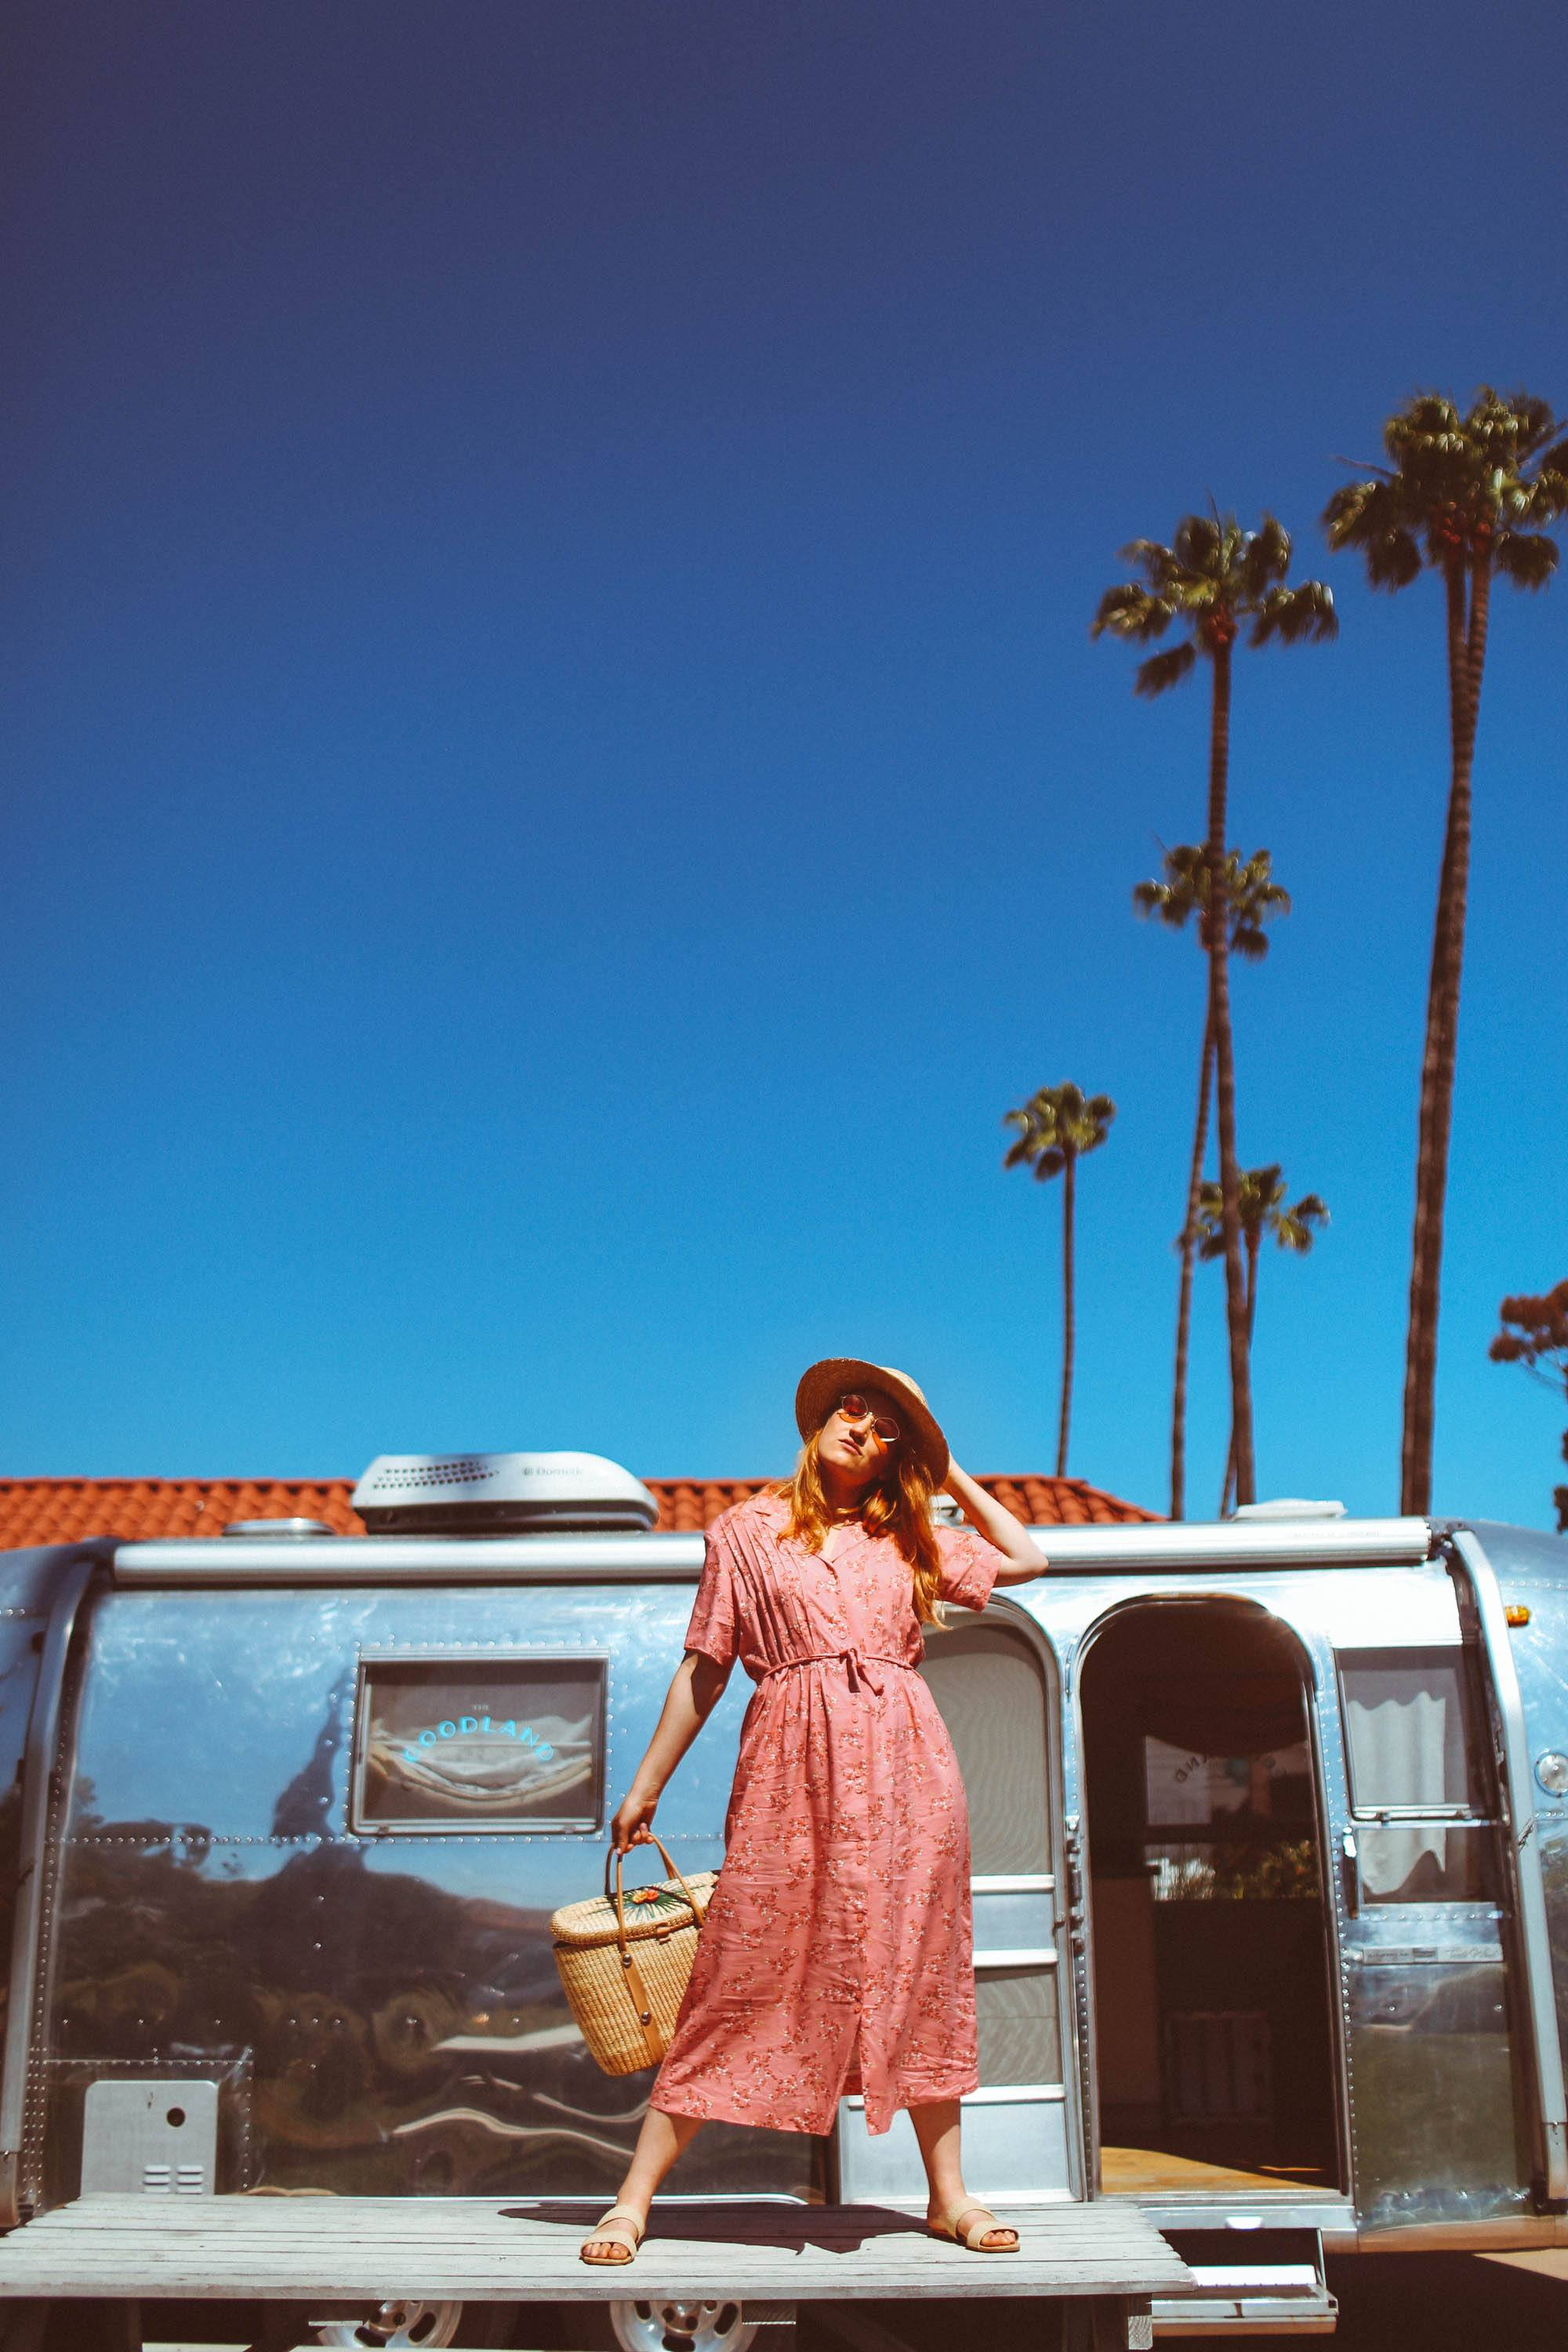 Woman in hat and vintage pink dress and hat standing on a table in front of an airstream with palm trees in the background